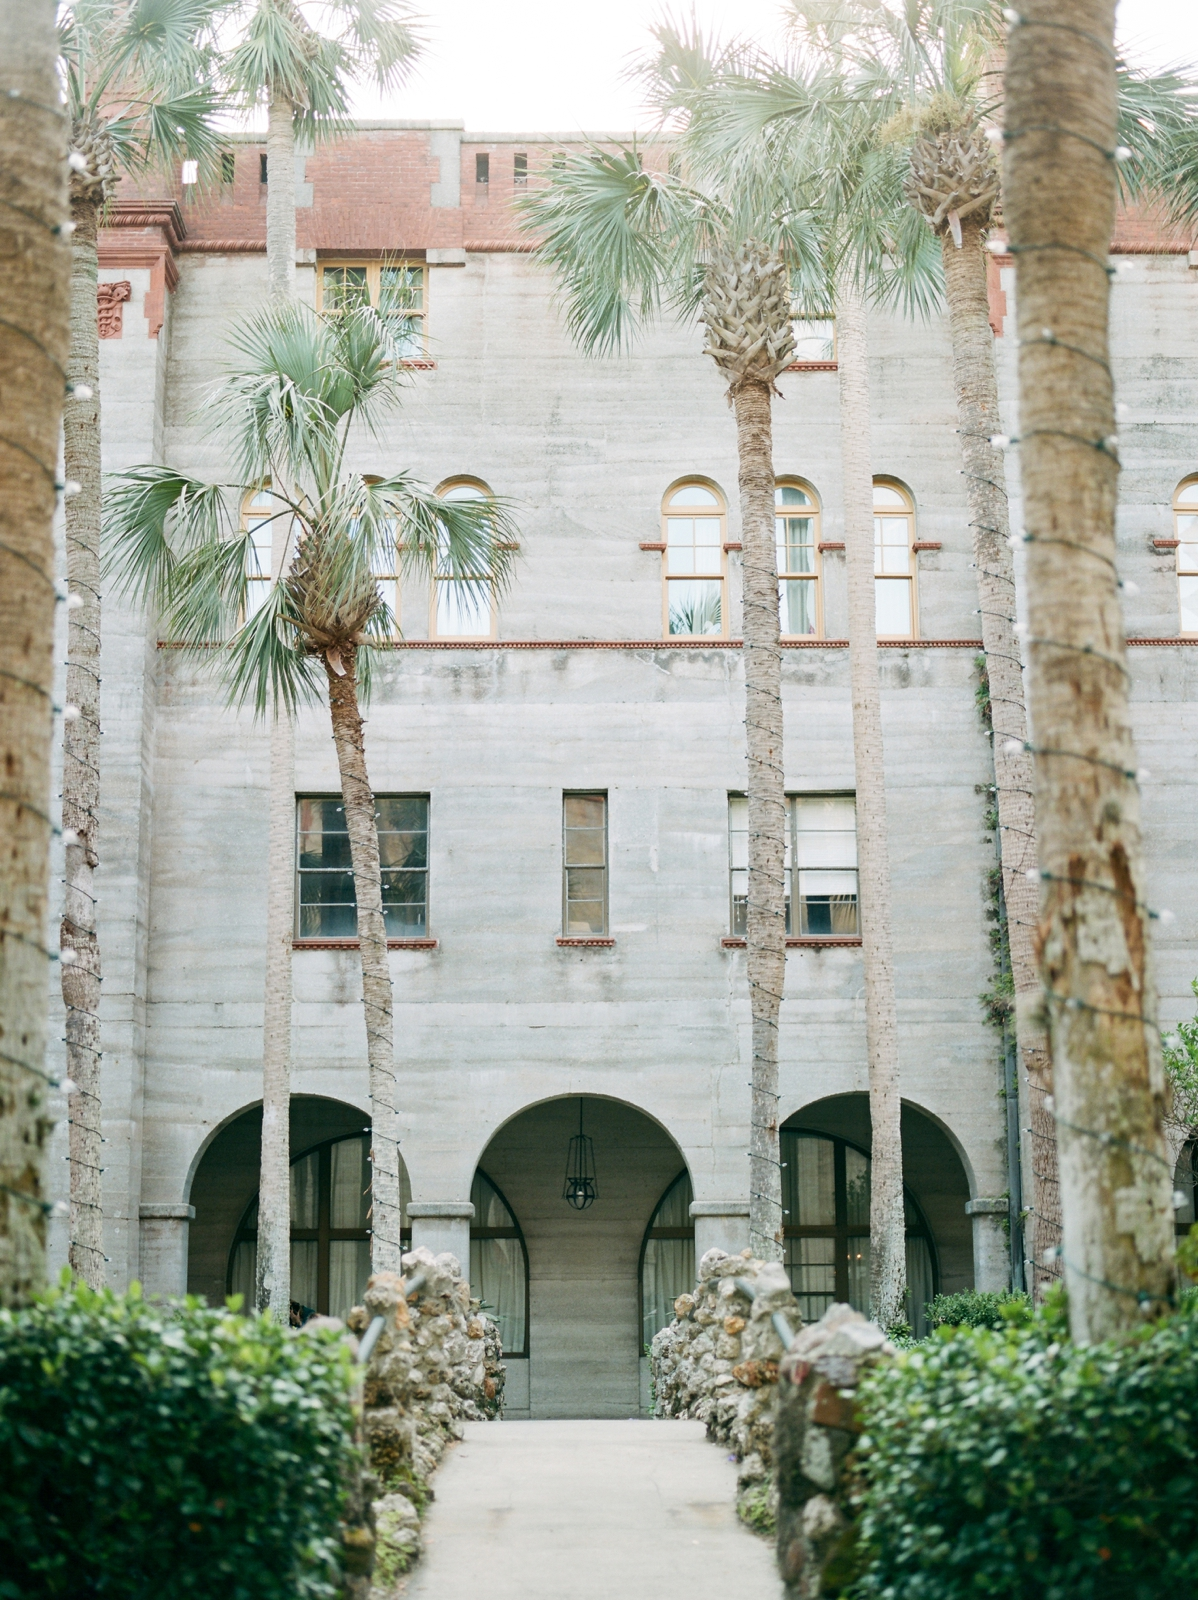 lightner_museum_st_augustine_wedding_photographer_shannon_griffin_0027.jpg